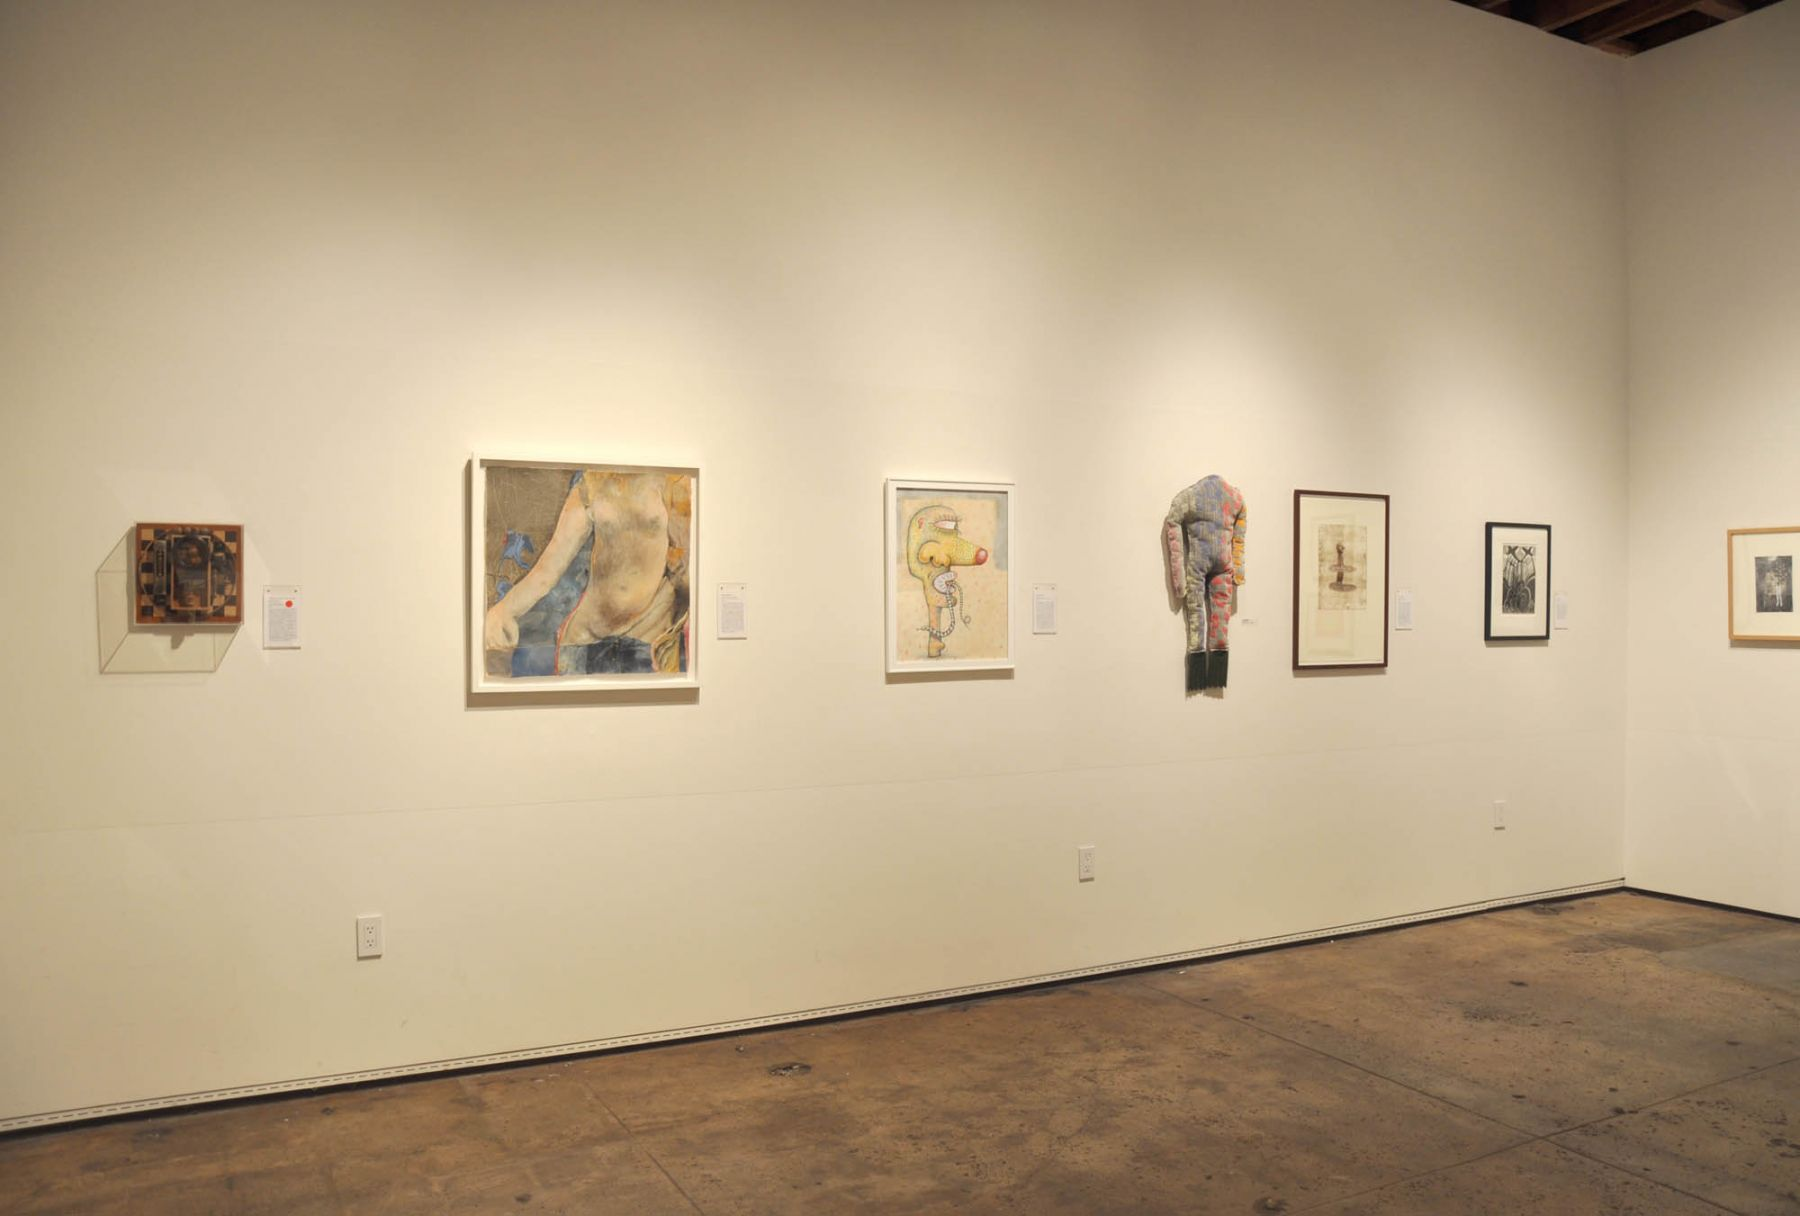 The Art of Santa Barbara, Tony Askew, Mary Heebner, Keith Puccinelli, Dane Goodman, Colin Gray